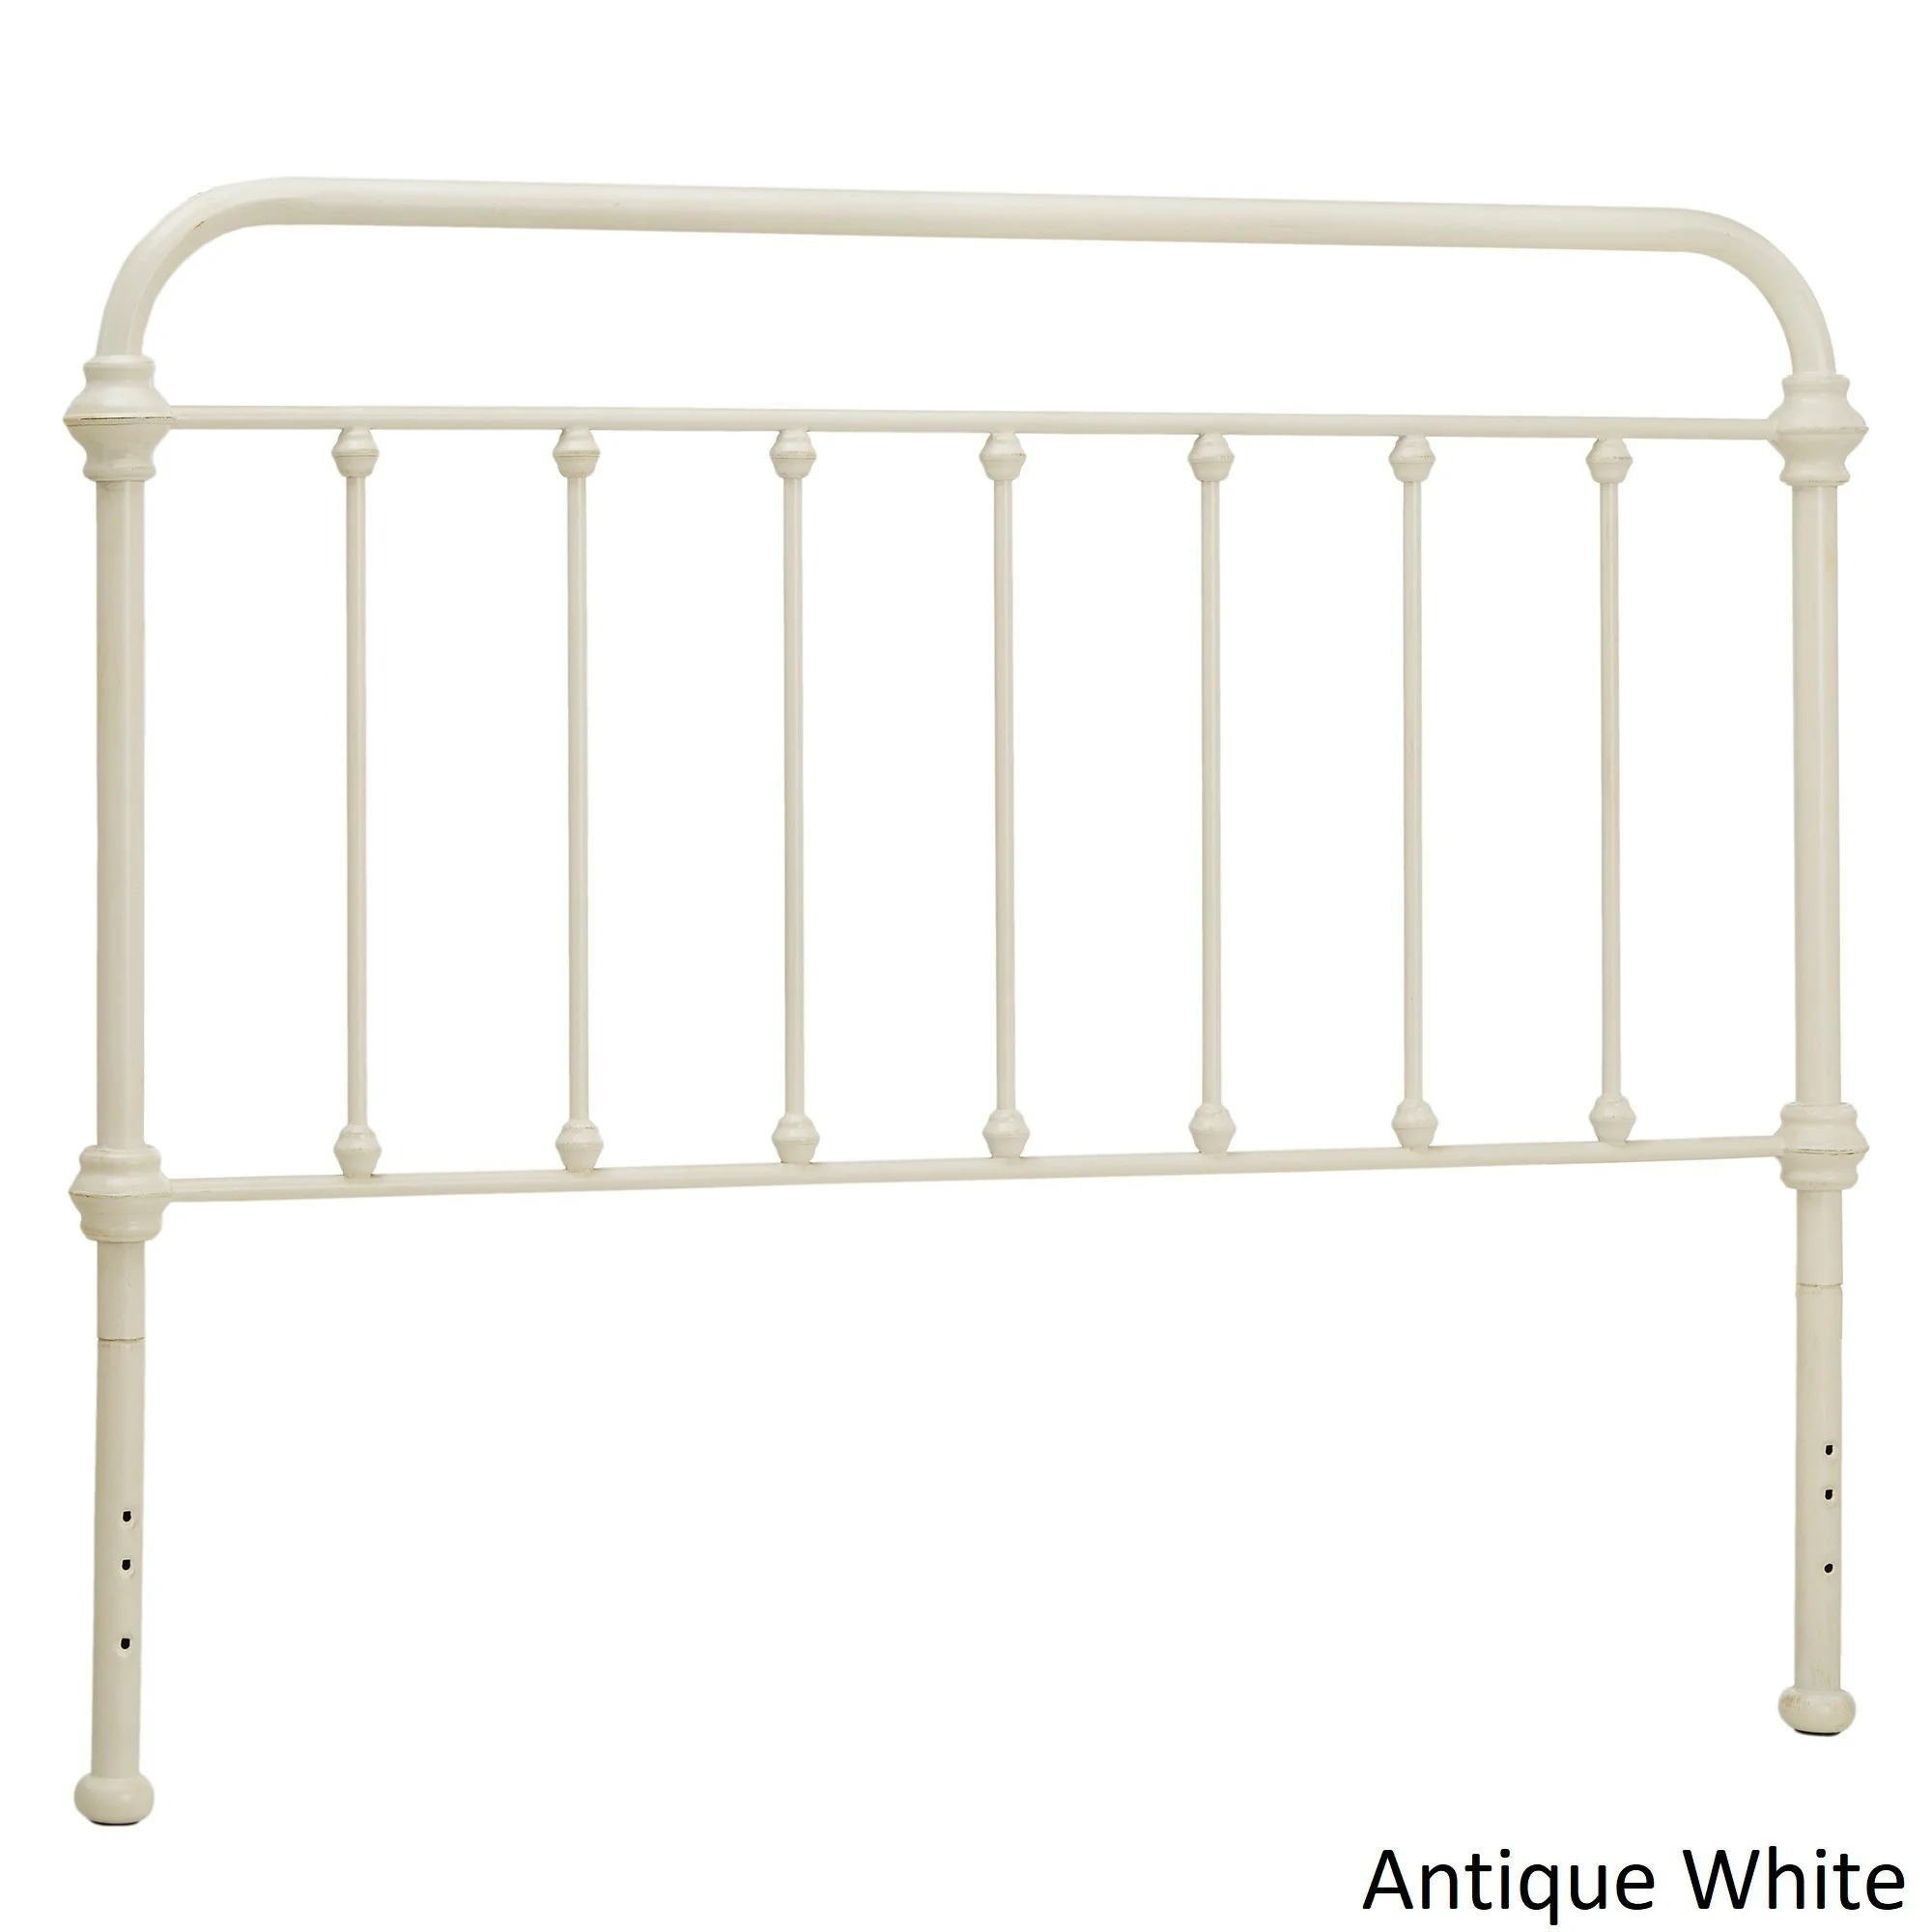 Giselle Antique Graceful Victorian Metal Headboard by iNSPIRE Q Classic